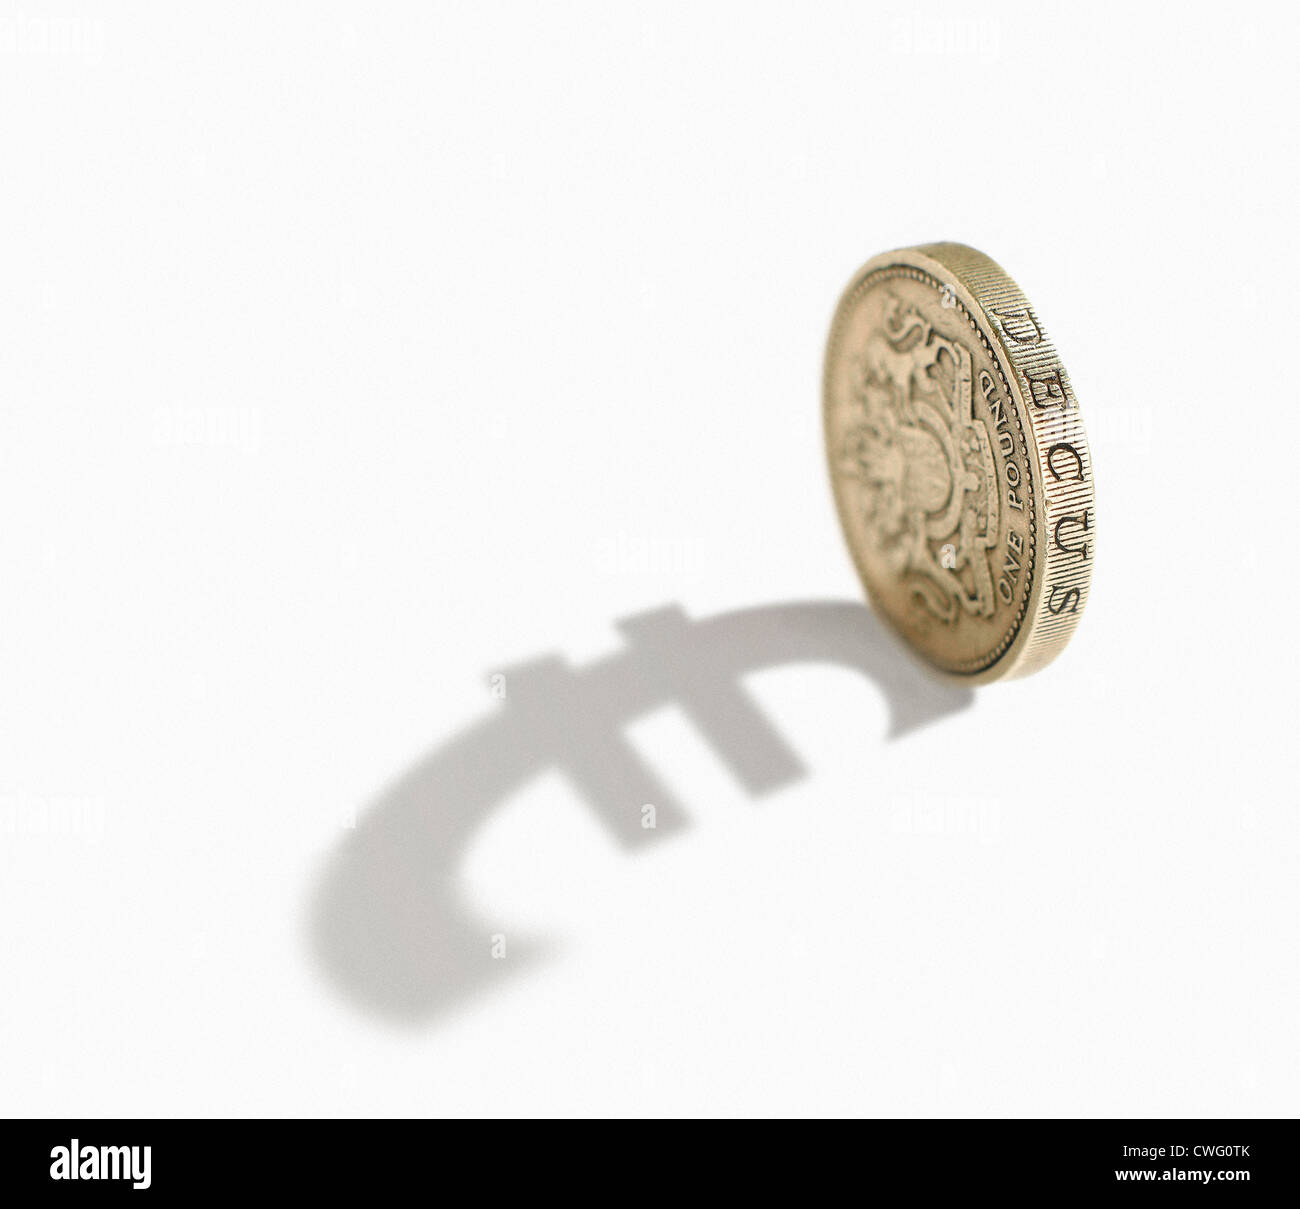 Pund coin casting a shadow of the euro symbol. Stock Photo